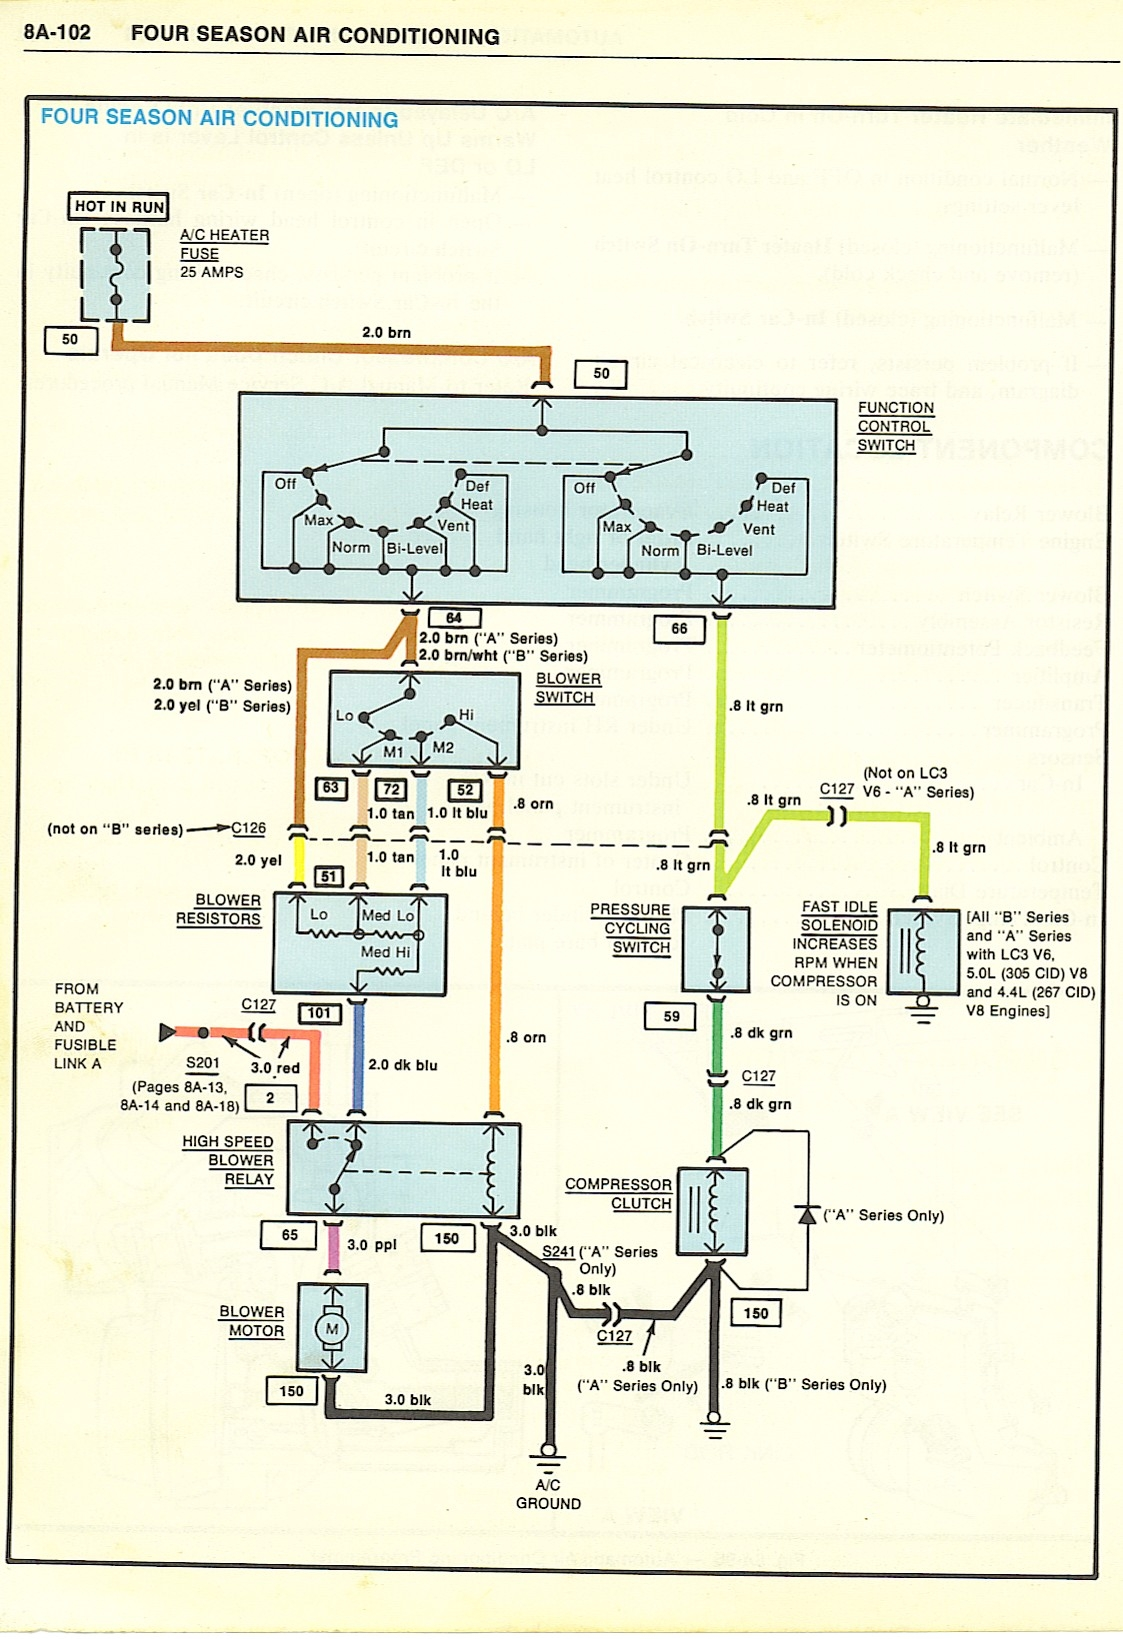 1968 FourSeasonAirConditioner chevy diagrams 1963 C10 Wiring Diagram at arjmand.co